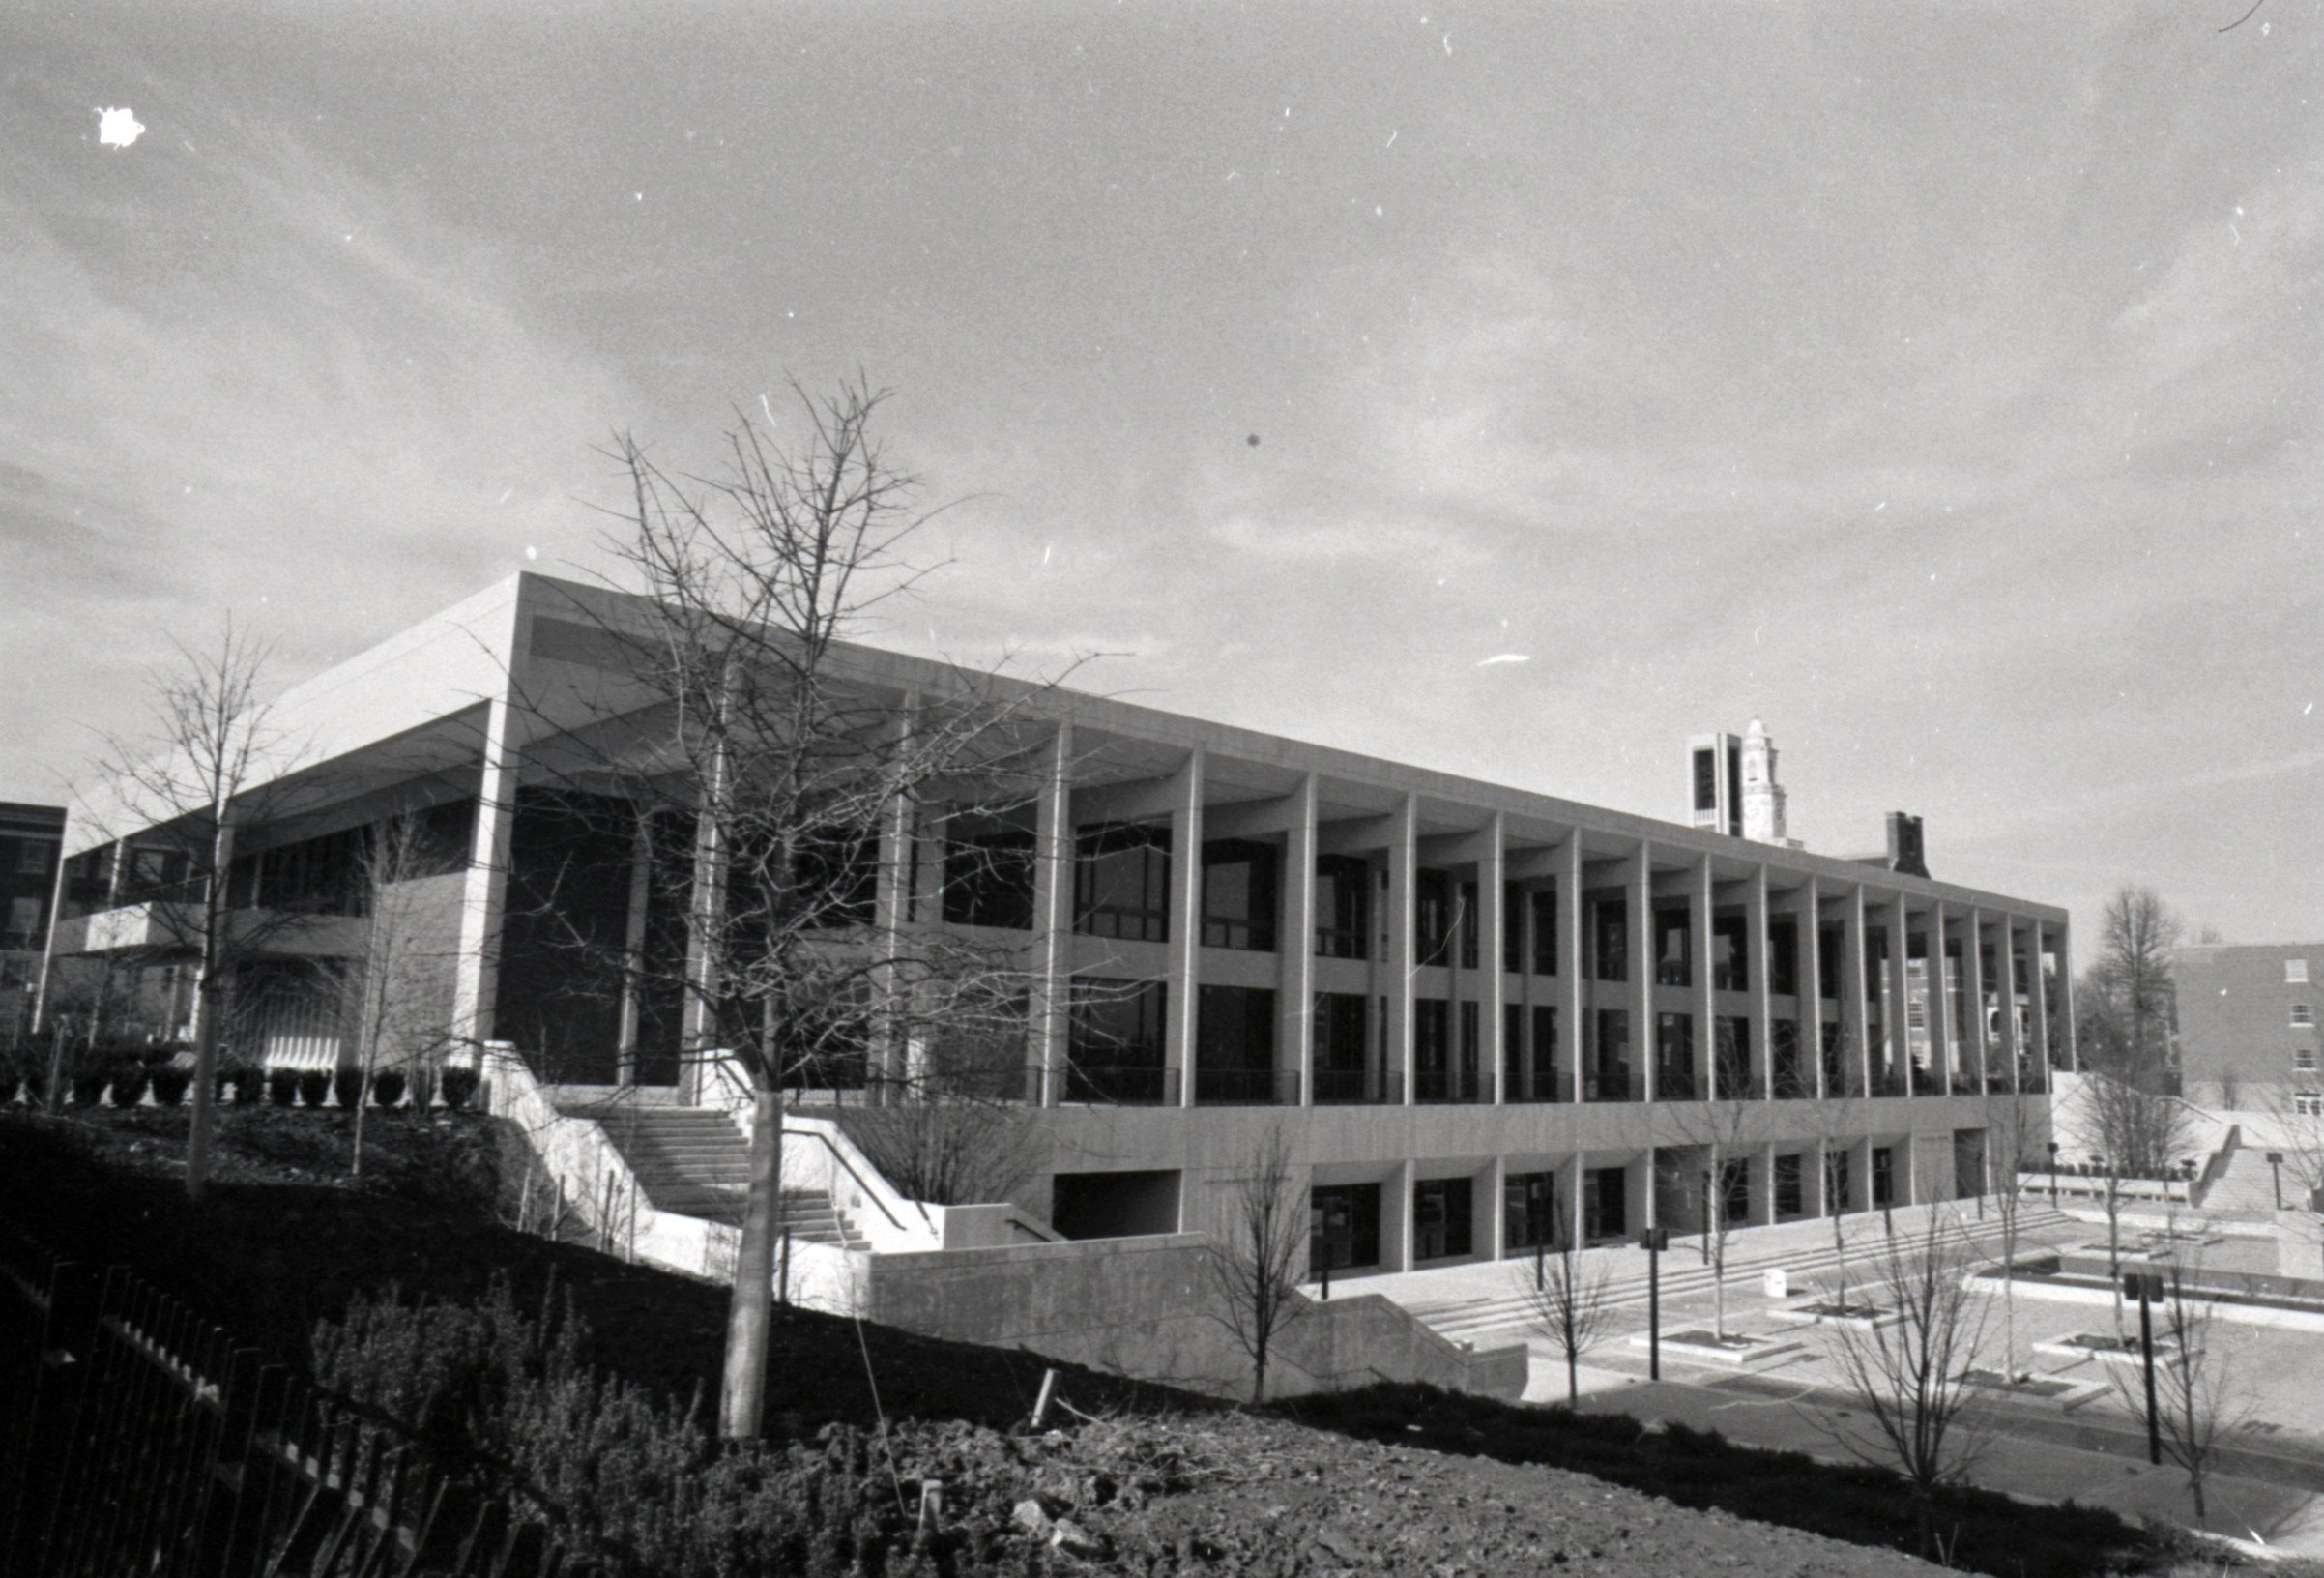 The Powell Building, 1972. EKU Negative Collection